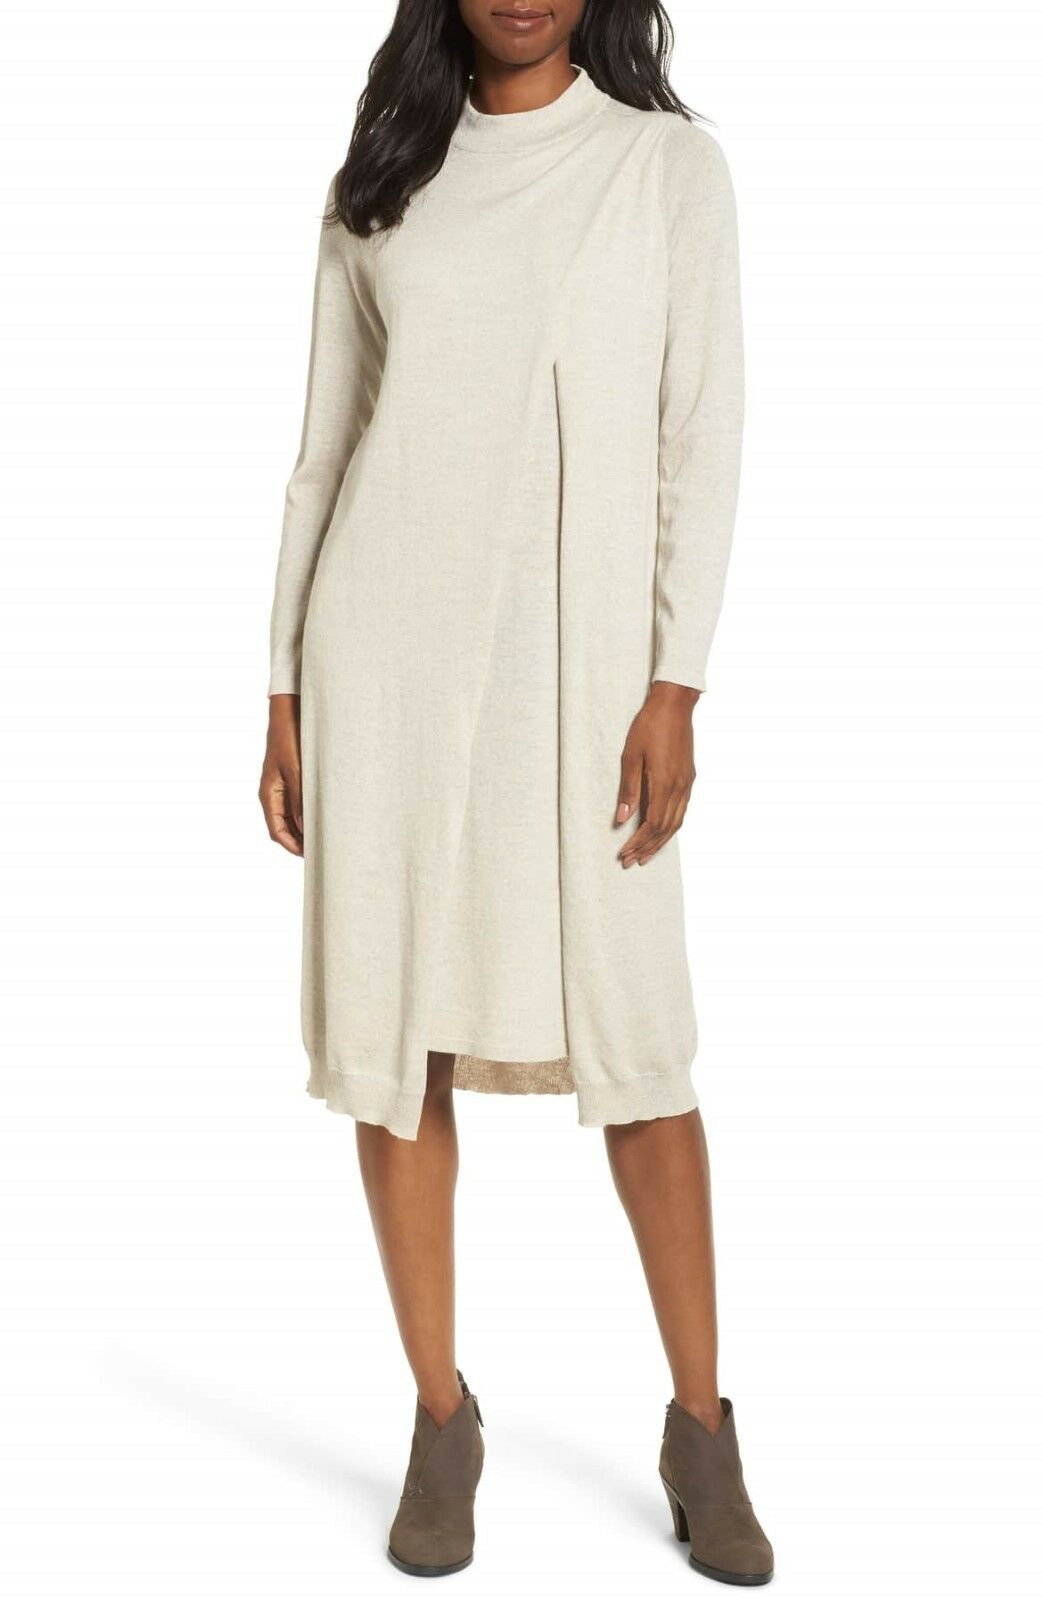 NEW Eileen Fisher Layered Wool Dress in Natural - Size XXS